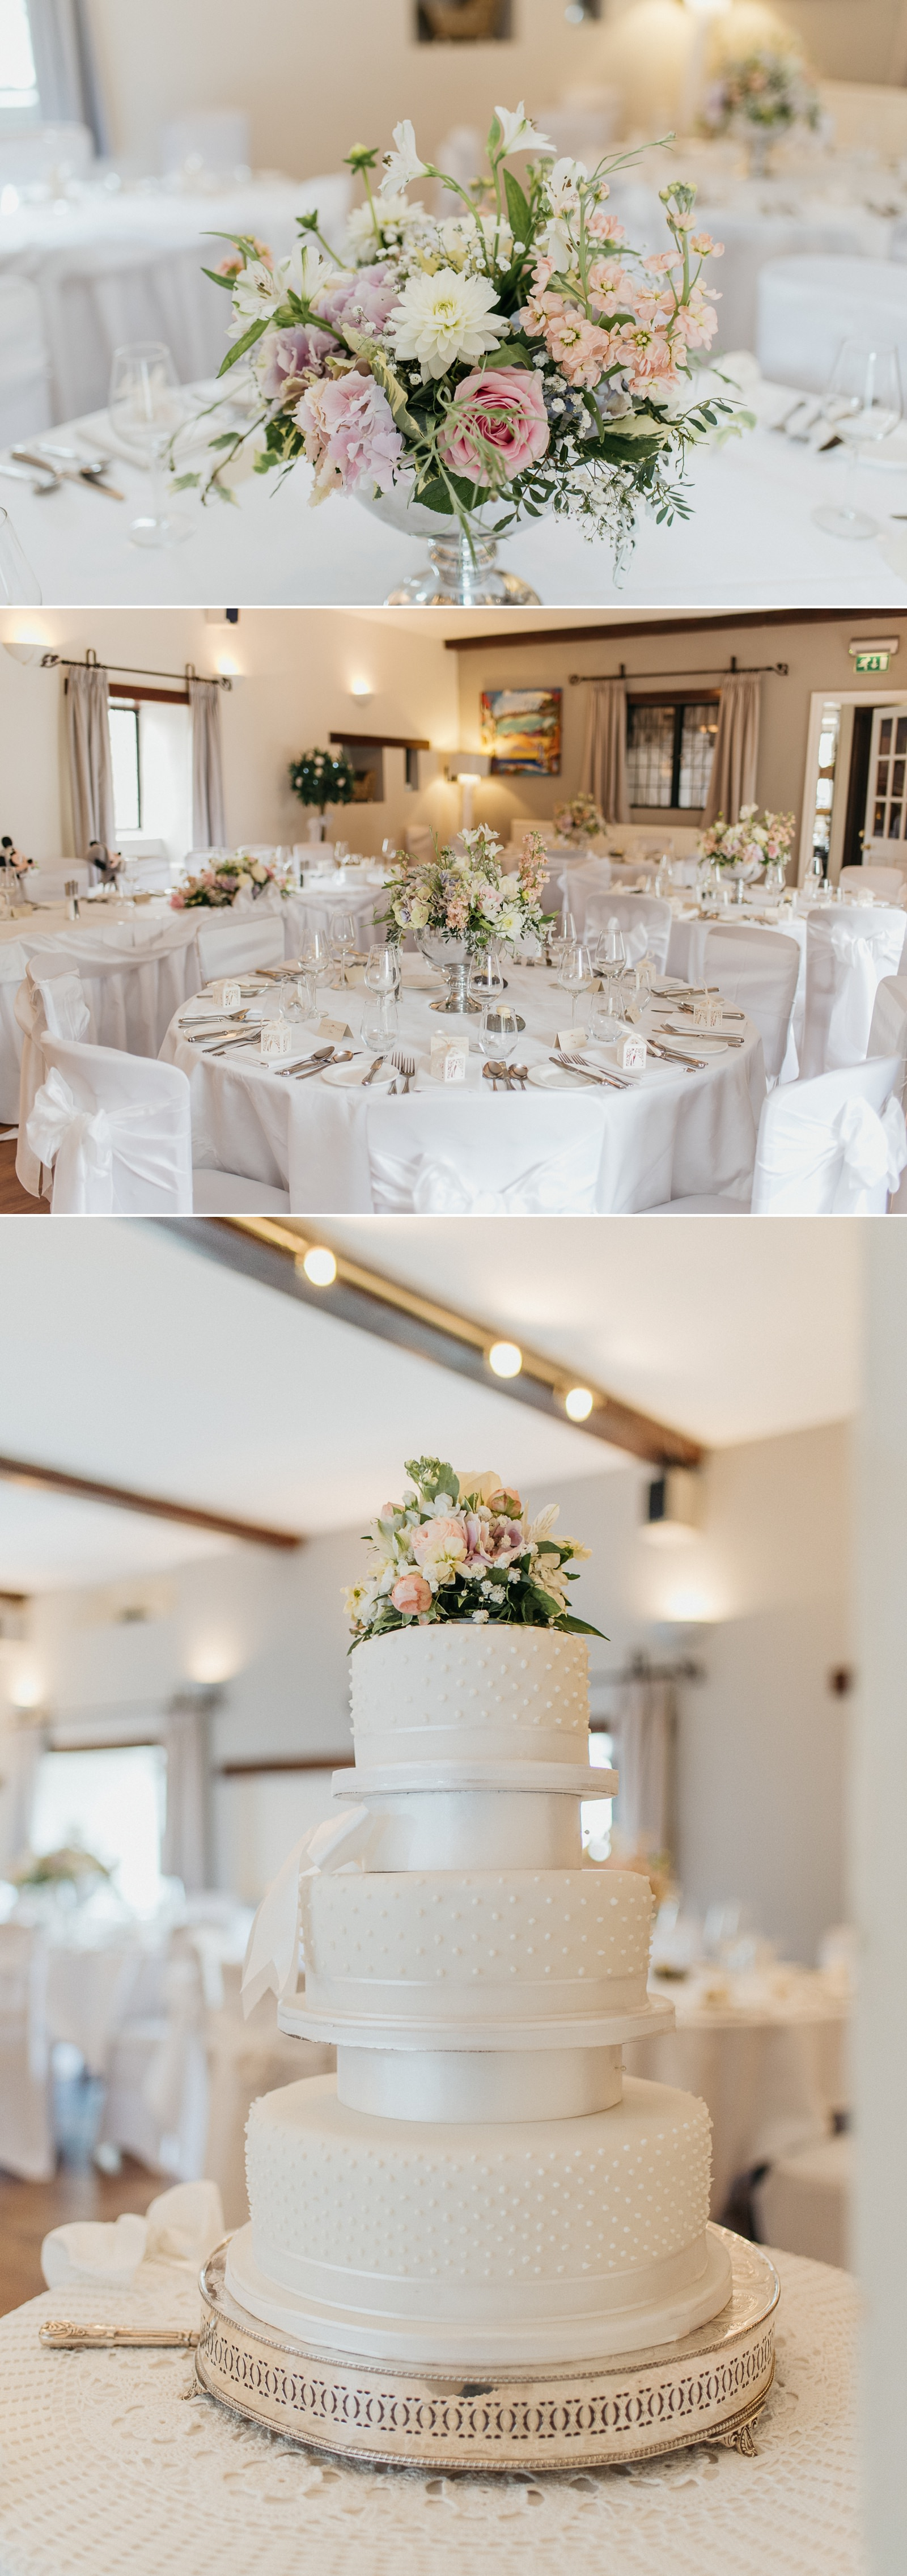 Relaxed South Classic wedding cake at relaxed wedding at The Great House Hotel, Laleston